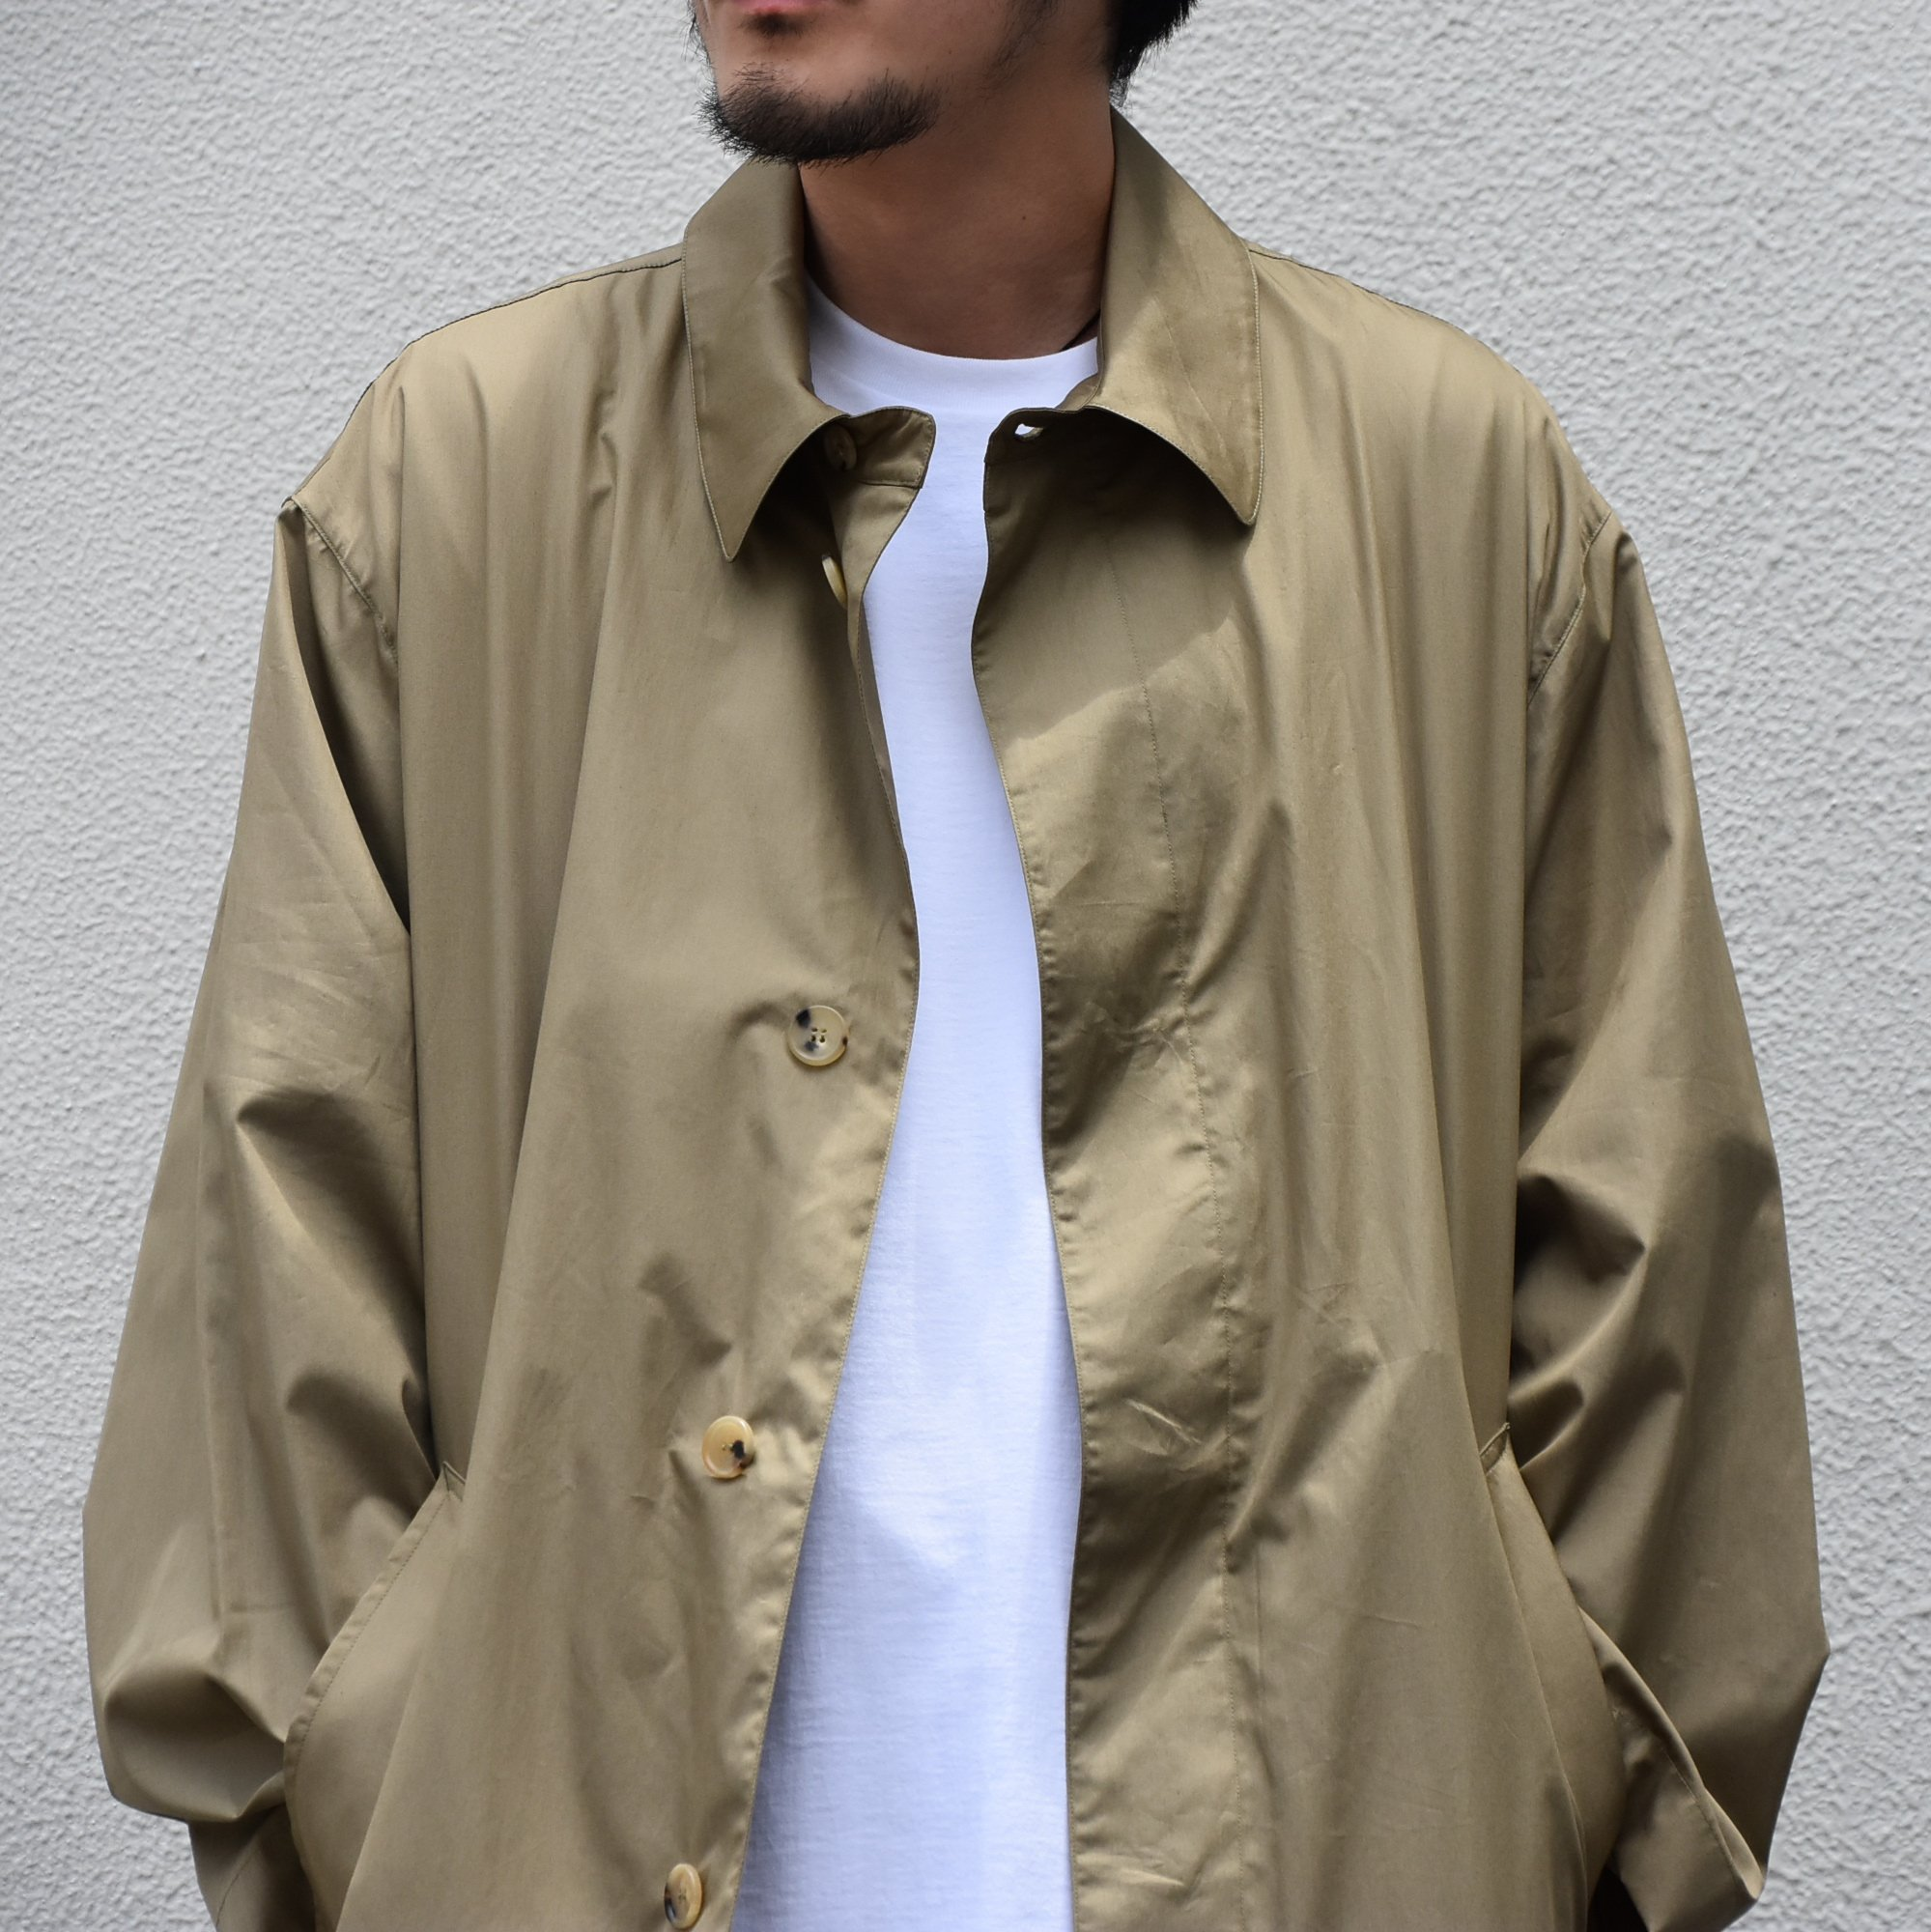 【2020】 Cristaseya(クリスタセヤ)/ OVERSIZED LIGHT COTTON SUMMER TRENCH -Light khaki- #01DA-C-LK(2)